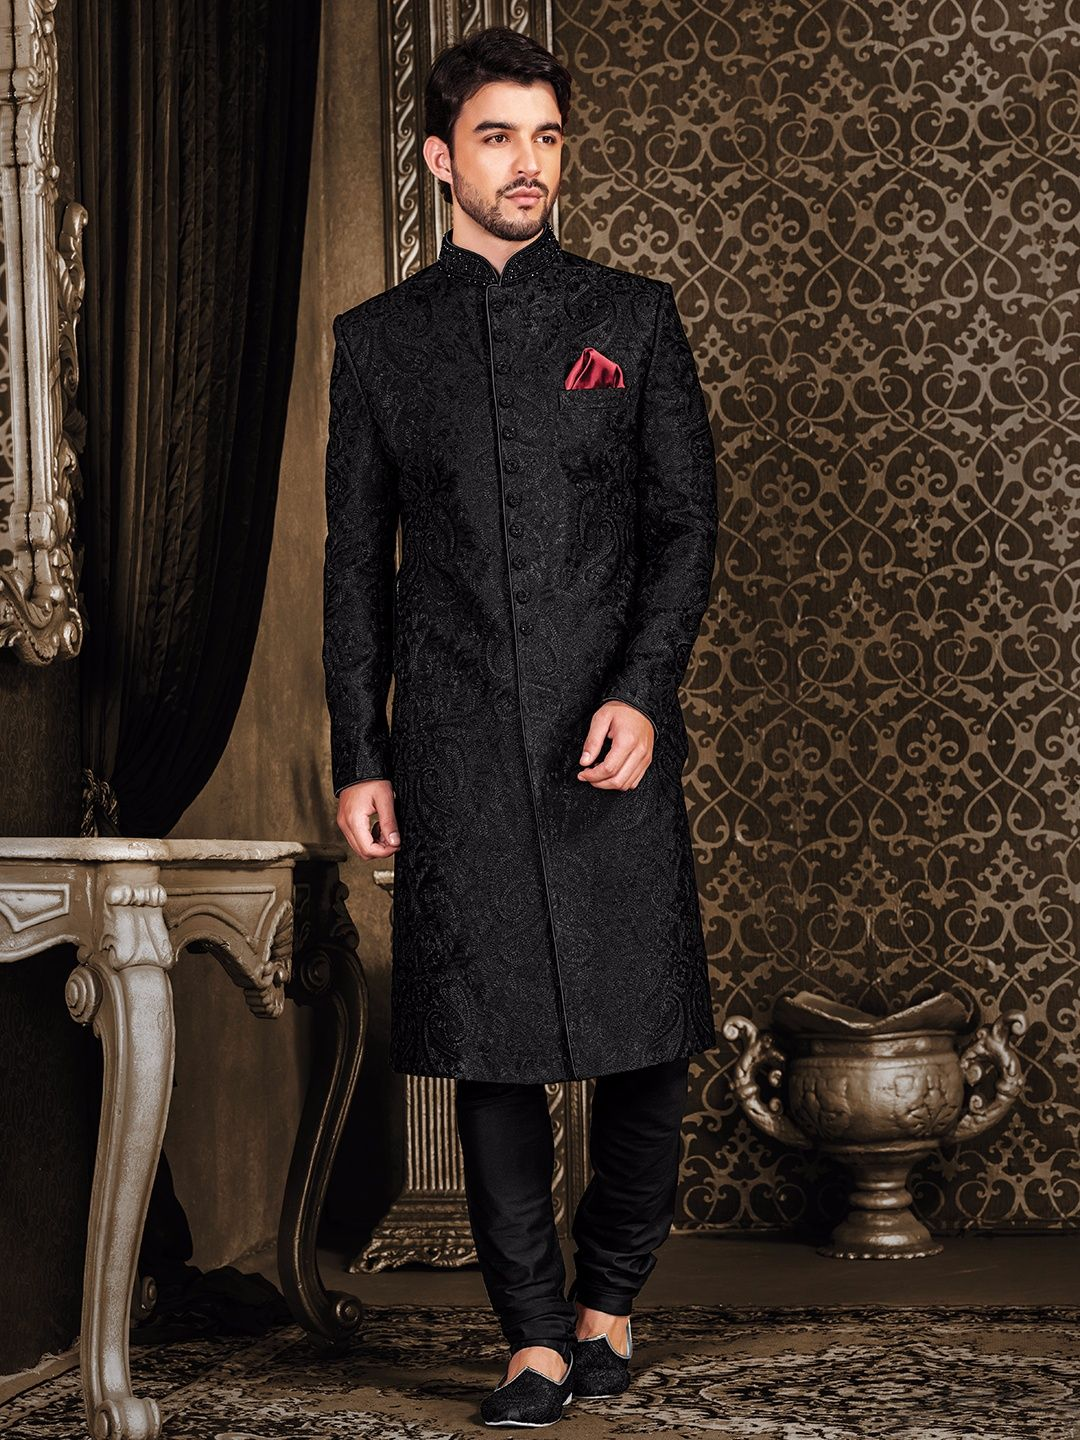 42d038176a Shop Black terry rayon classy sherwani online from G3fashion India. Brand -  G3, Product code - G3-MSH0501, Price - 21095, Color - Black, Fabric - Terry  ...